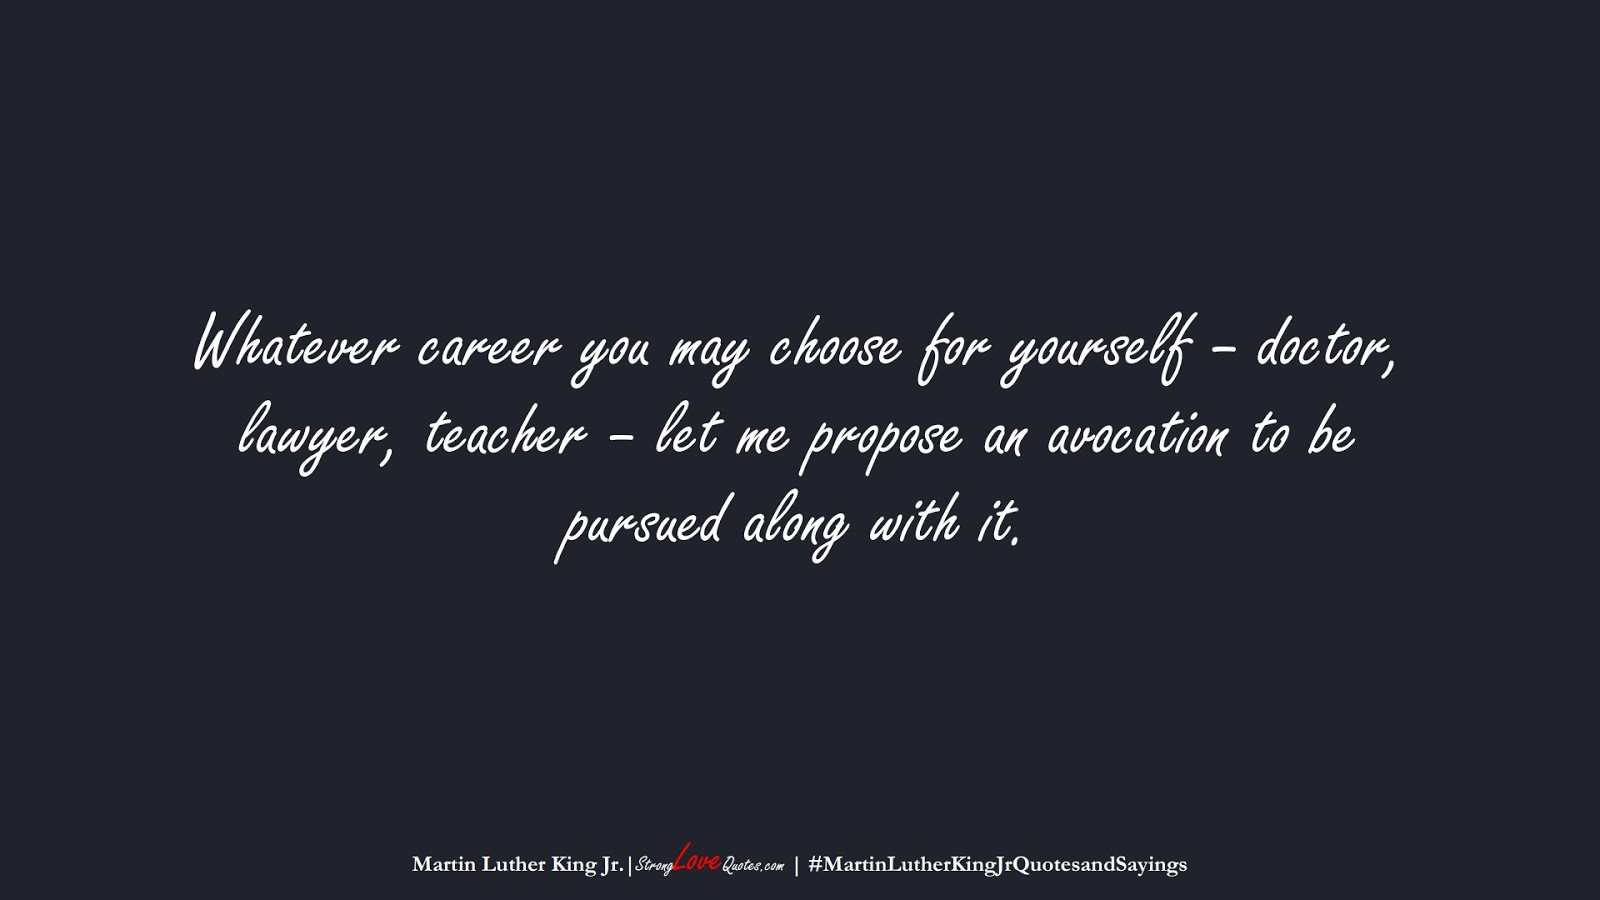 Whatever career you may choose for yourself – doctor, lawyer, teacher – let me propose an avocation to be pursued along with it. (Martin Luther King Jr.);  #MartinLutherKingJrQuotesandSayings